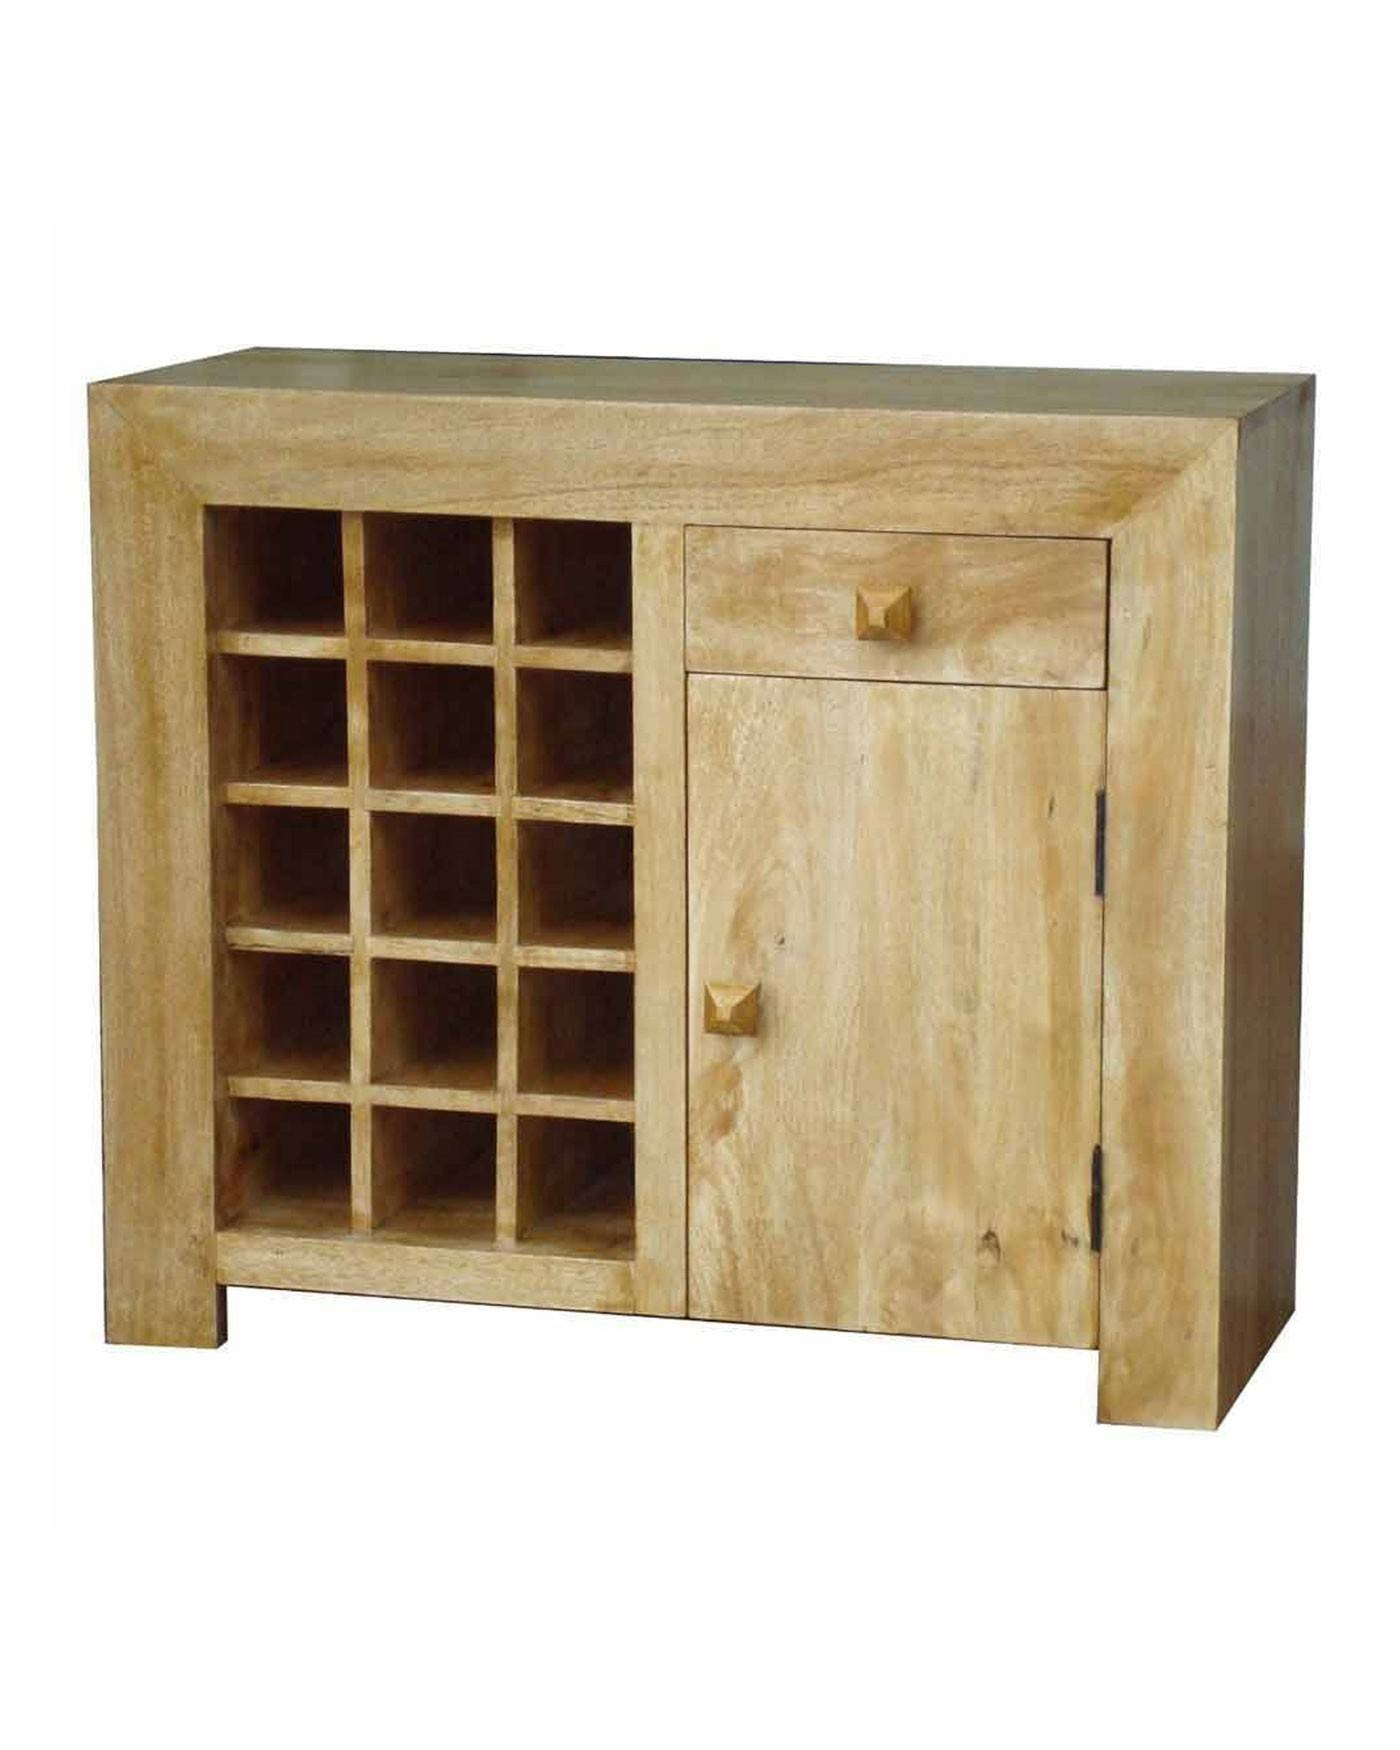 Dakota Sideboard With Wine Rack Oak Shade - Homescapes inside Oak Sideboards With Wine Rack (Image 6 of 30)